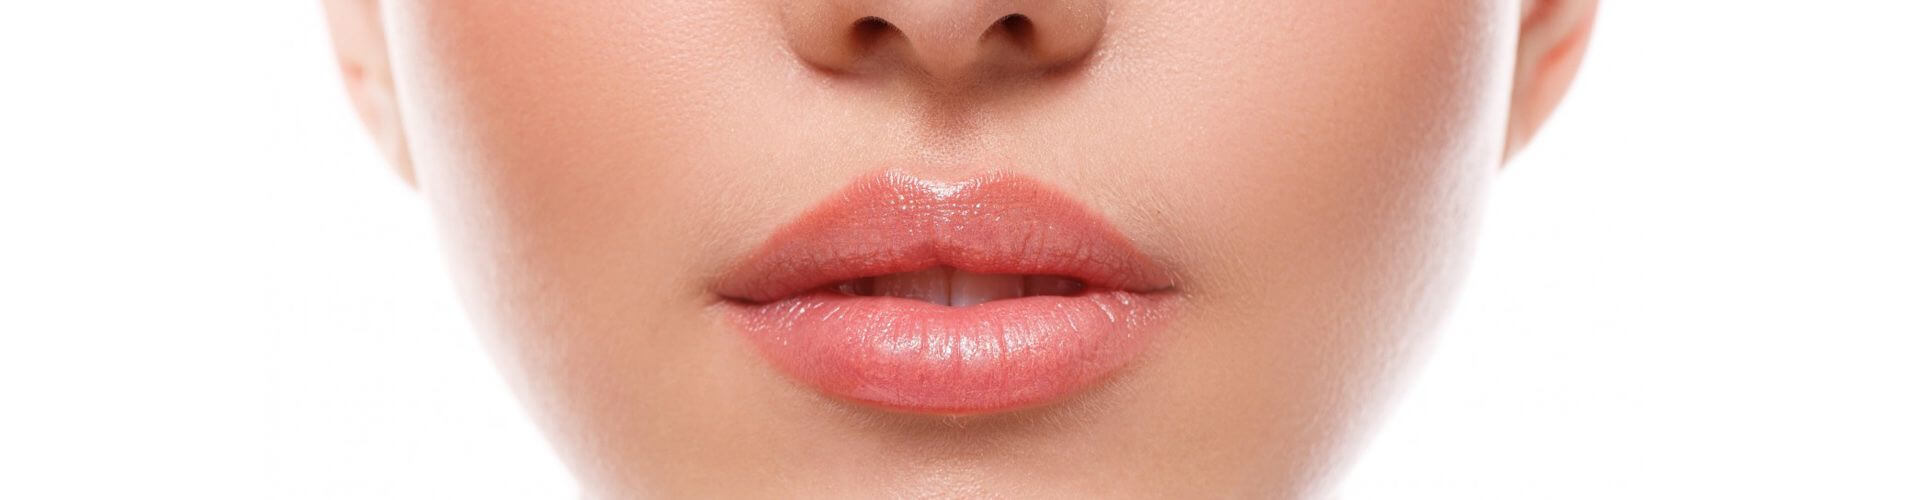 Lip Enhencement